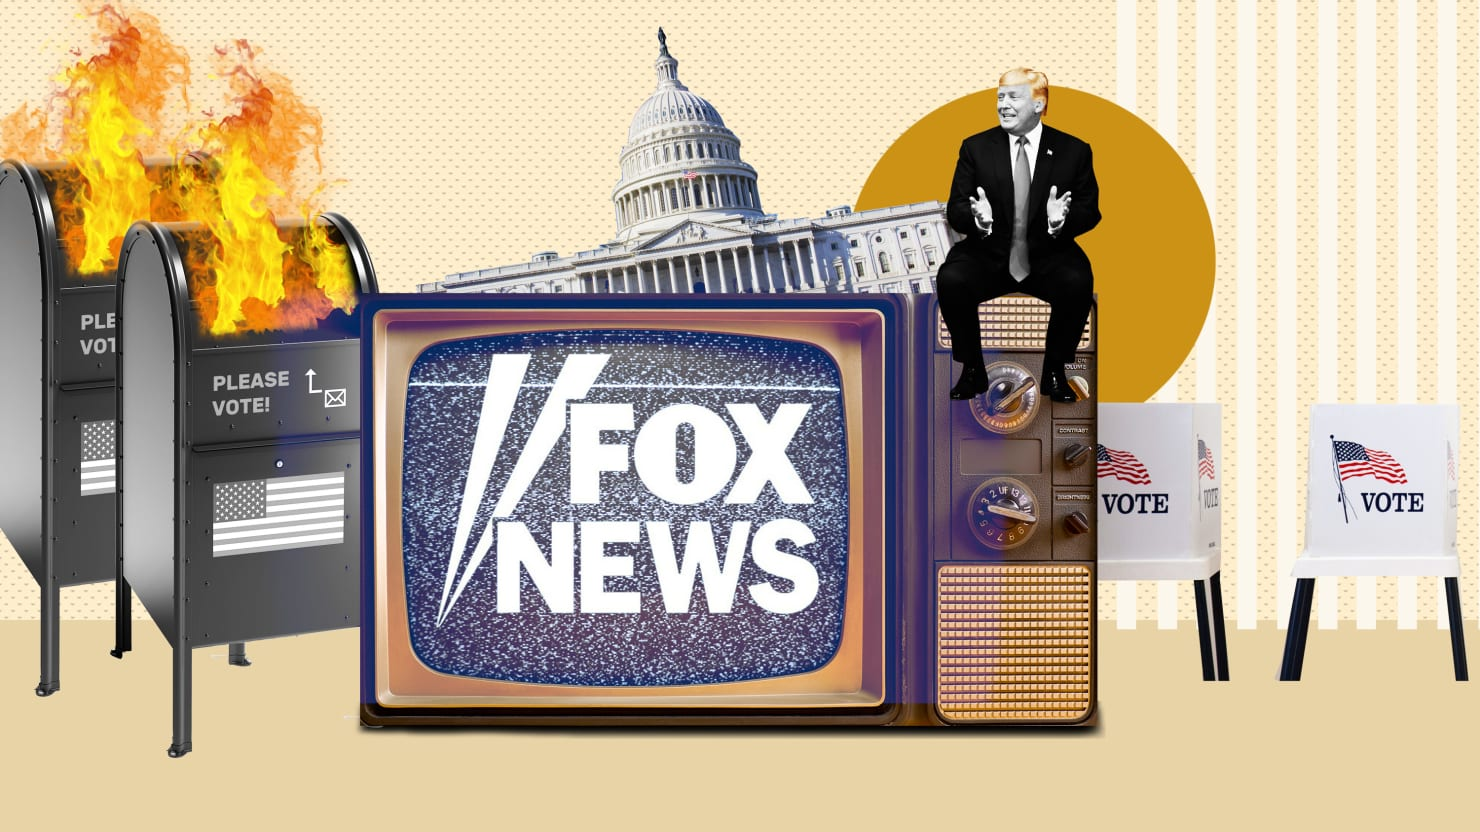 Fox News Pushing 'Brain Room' to Lend Credibility to Trump's Voter Fraud Paranoia, Insiders Say